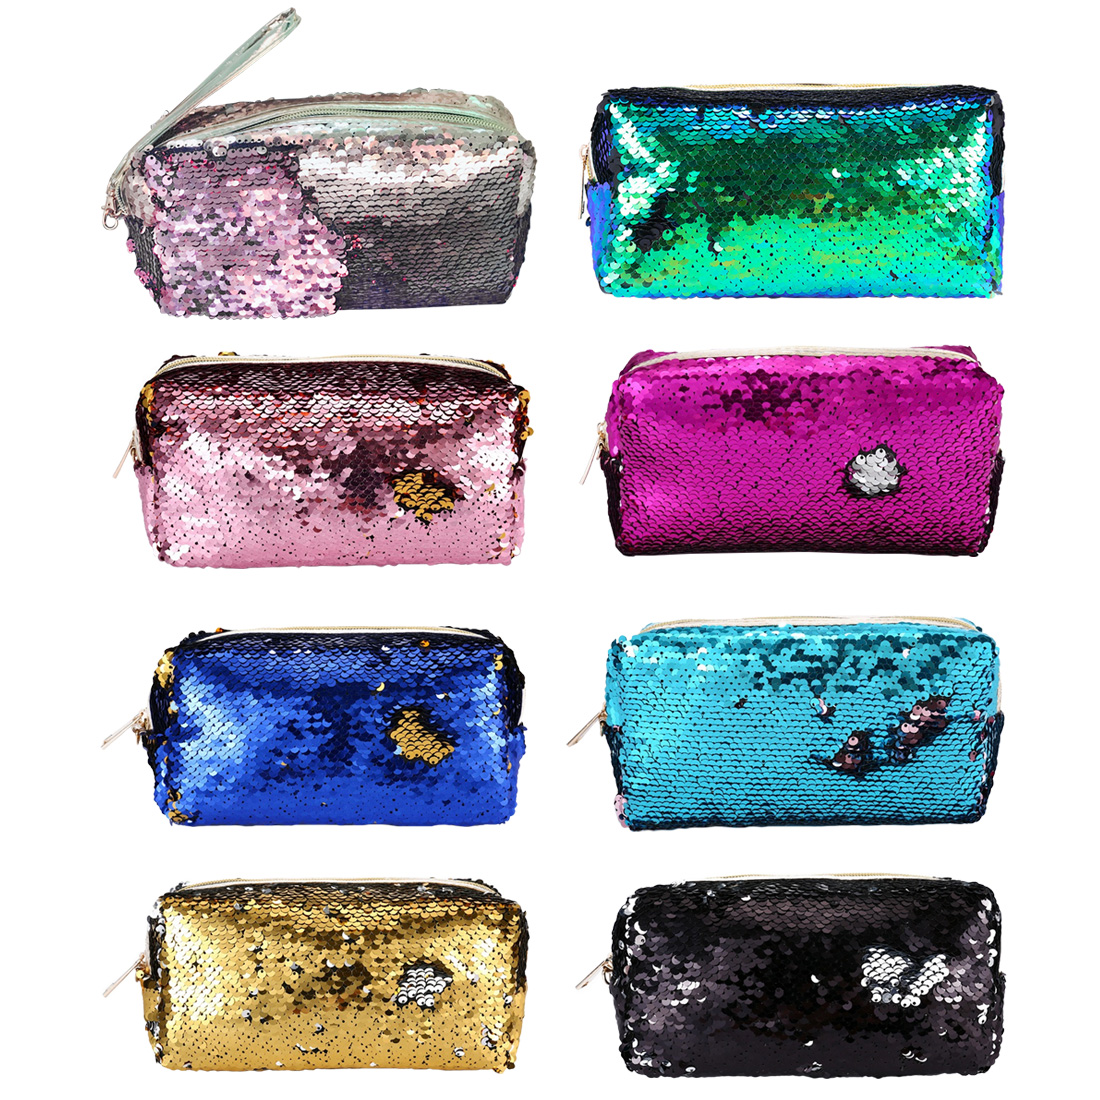 New High Quality Glitter Mermaid Sequins Laser Cosmetic Bag Fashion Student Sequin Pencil Case Ladies Coin Purse Storage BagsNew High Quality Glitter Mermaid Sequins Laser Cosmetic Bag Fashion Student Sequin Pencil Case Ladies Coin Purse Storage Bags